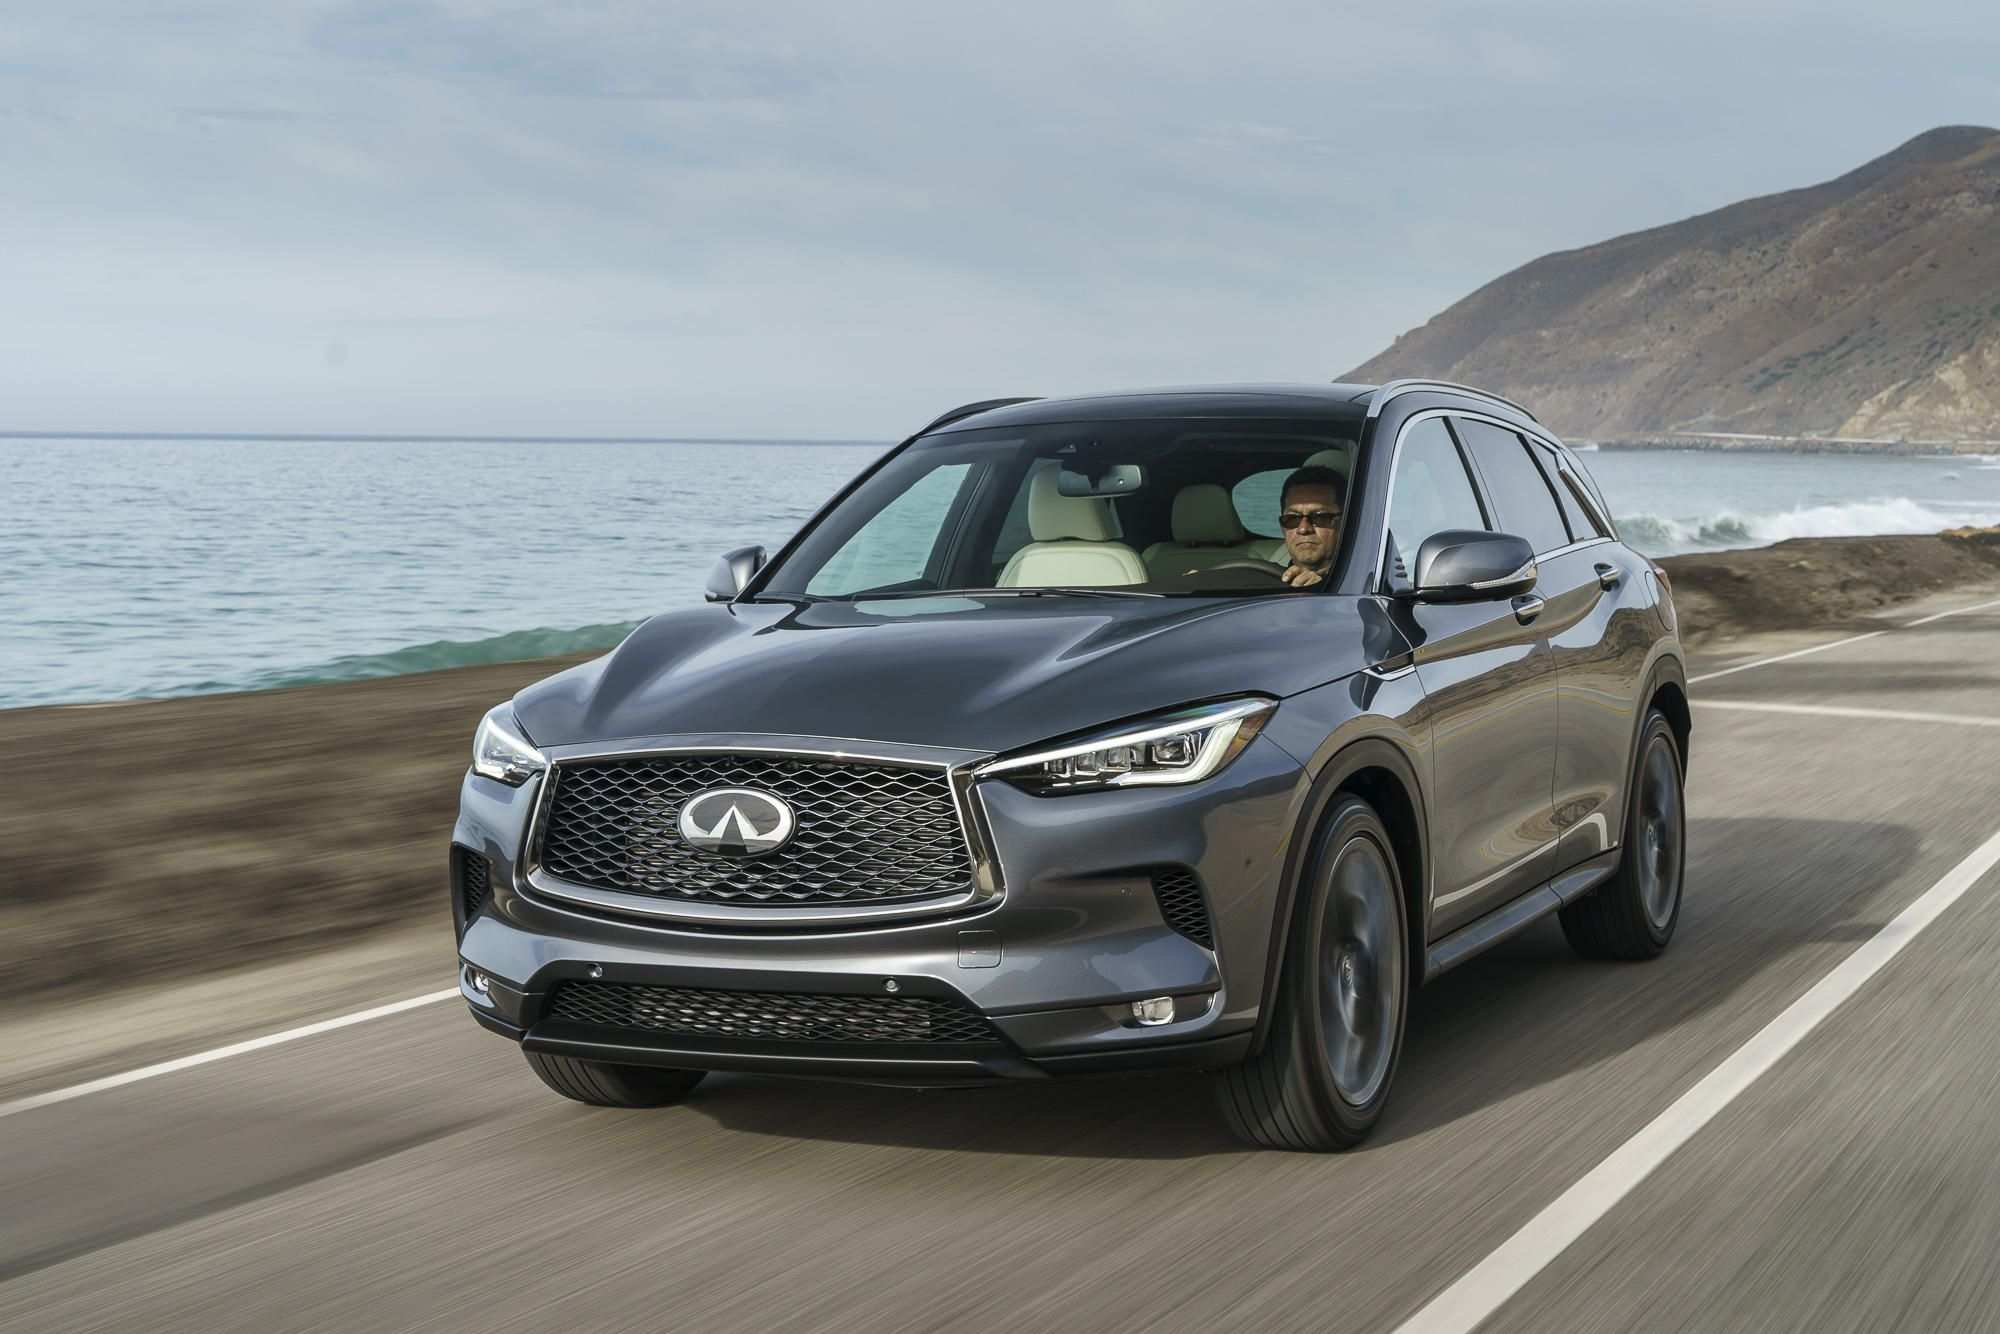 14 Great New 2019 Infiniti Qx50 Fuel Economy Review History with New 2019 Infiniti Qx50 Fuel Economy Review